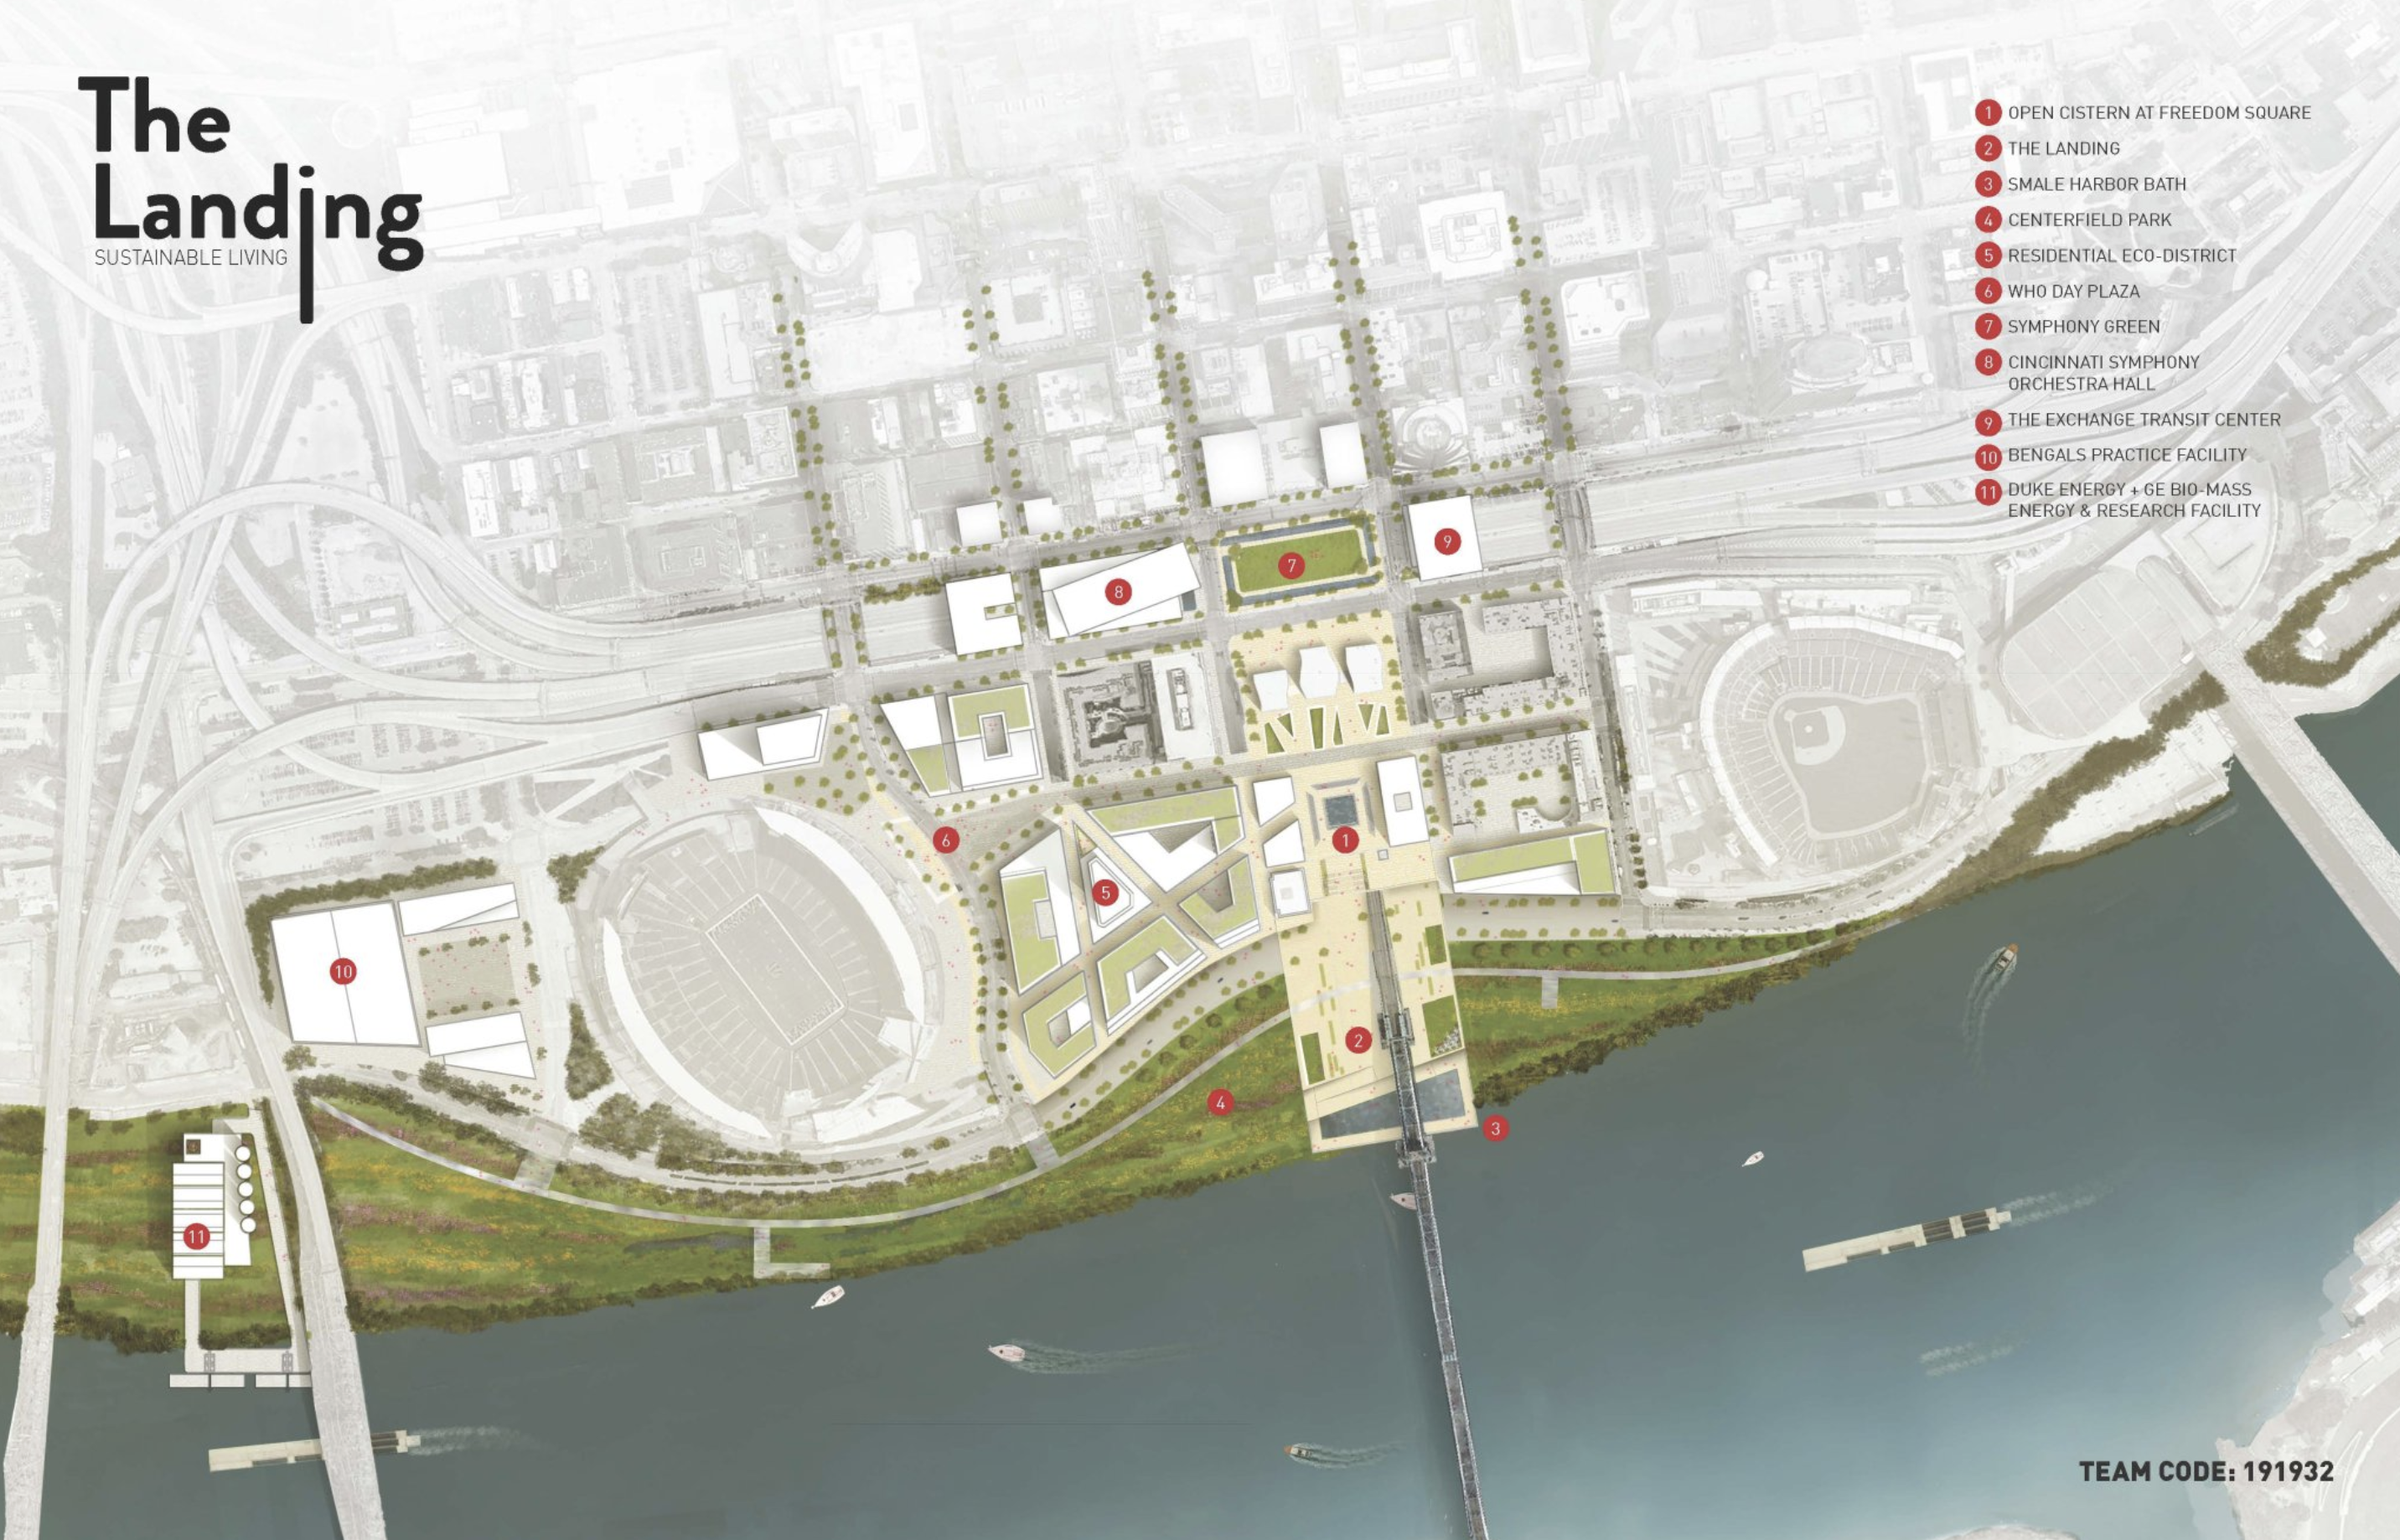 Rendering of The Landing ULI Proposal by Students